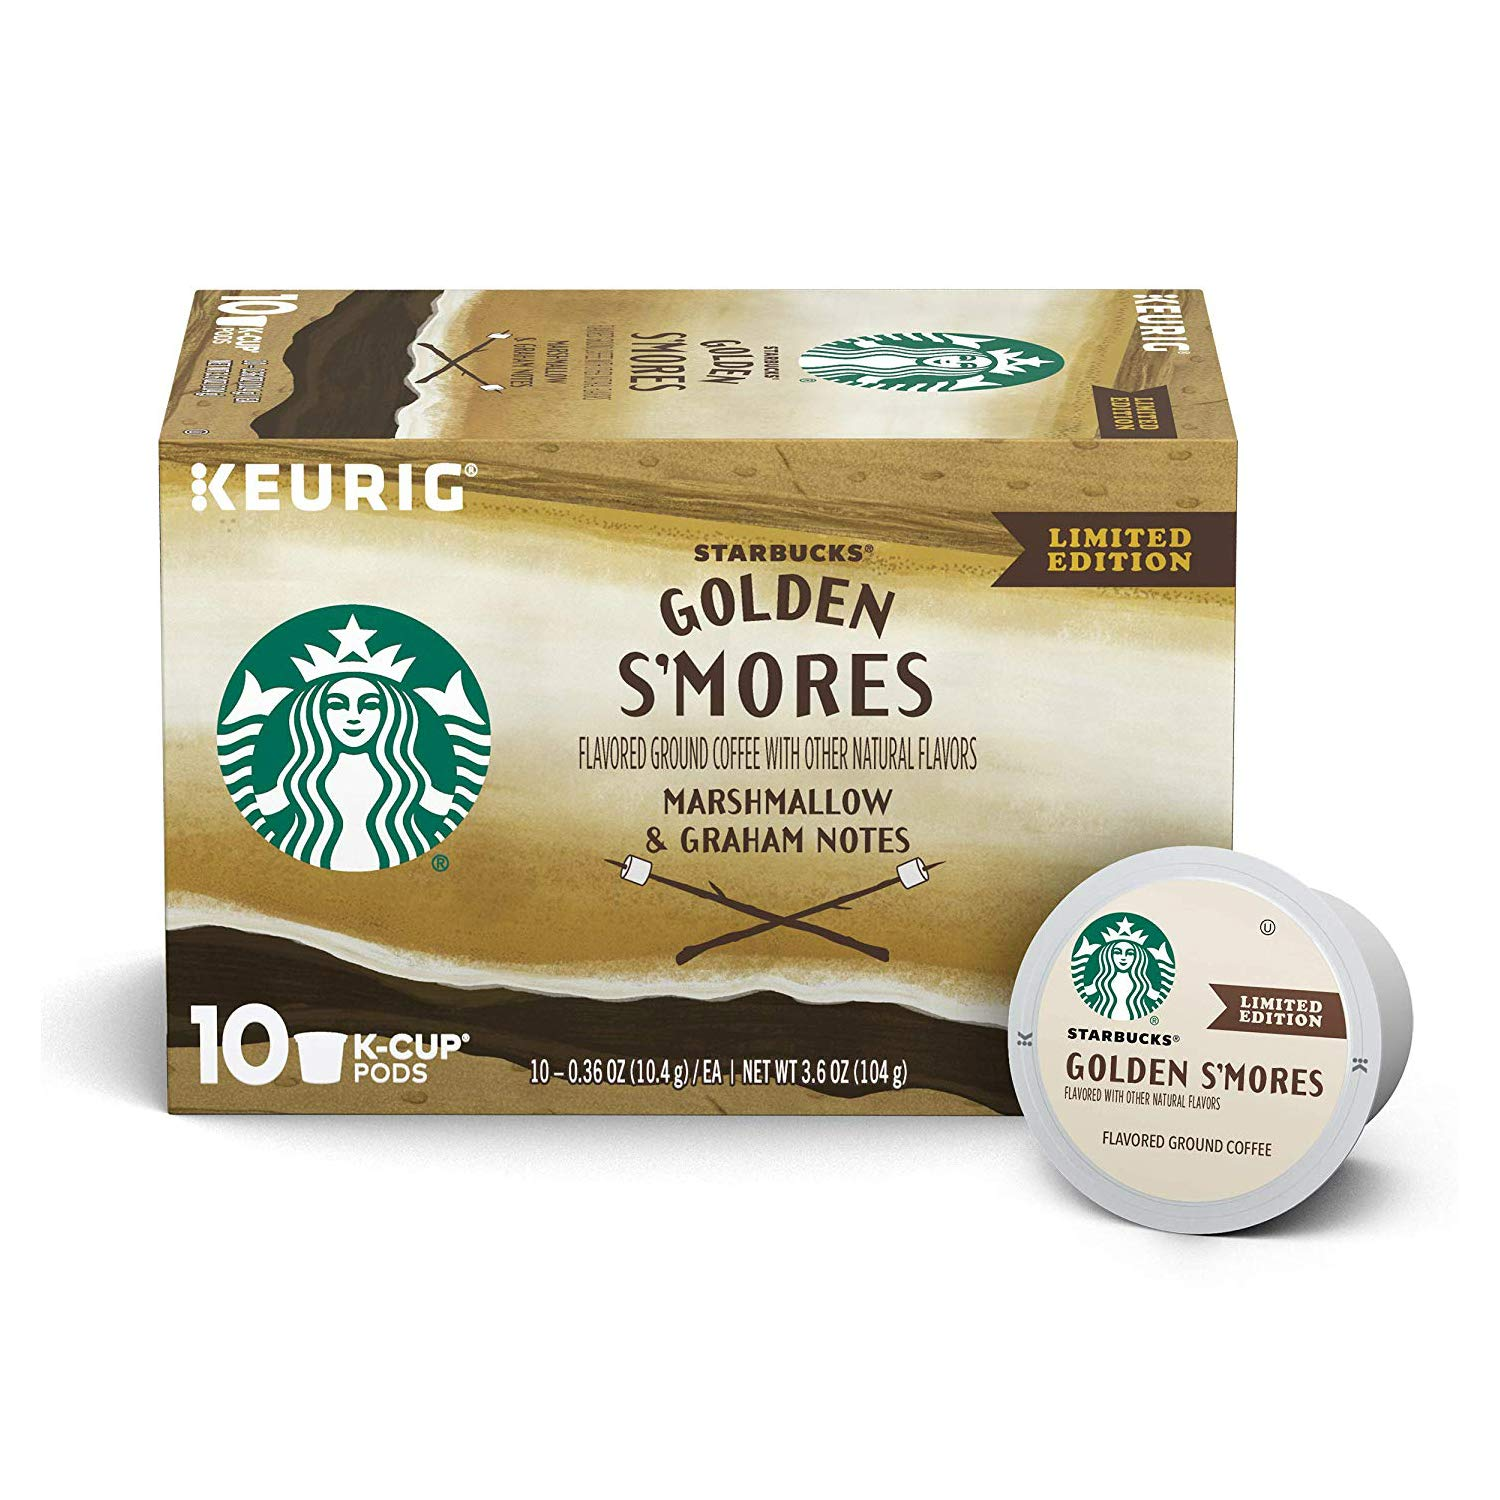 Starbucks Golden S'mores Flavored Blonde Roast Single Cup Coffee for Keurig Brewers, 3.6-oz. boxes of 10 by Starbucks